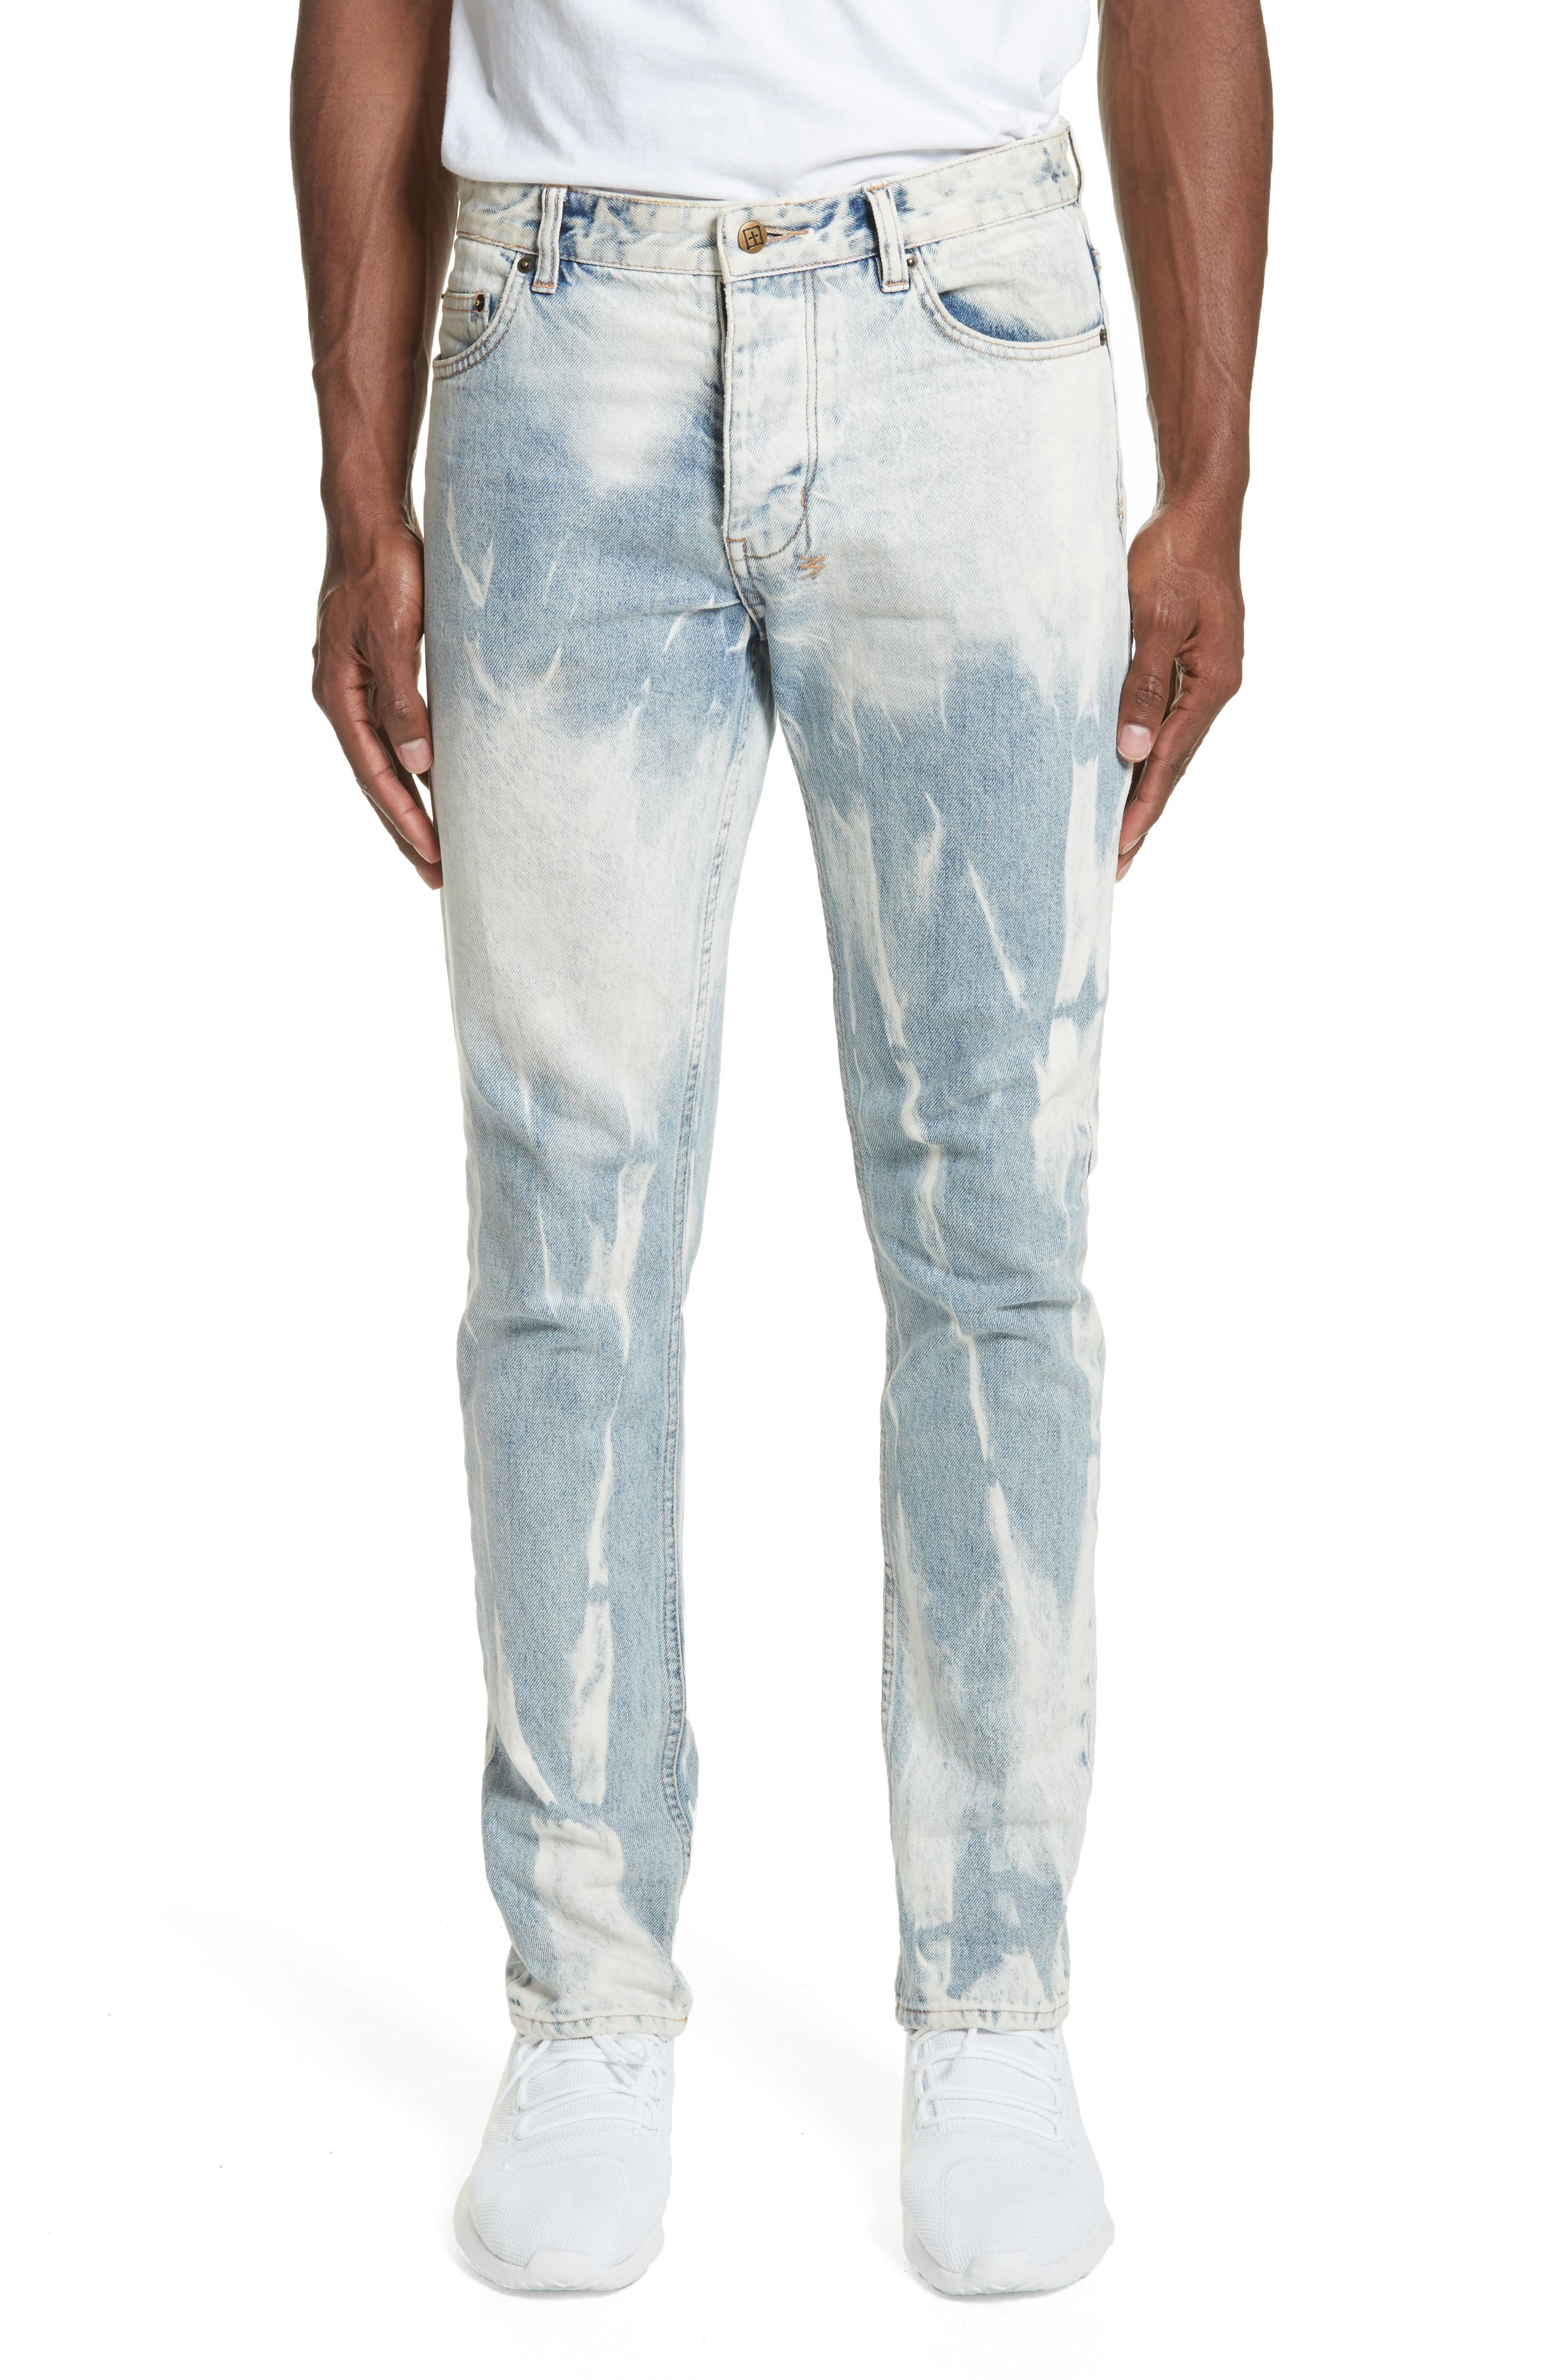 Chitch Mile Skinny Jeans,                             Main thumbnail 1, color,                             Denim